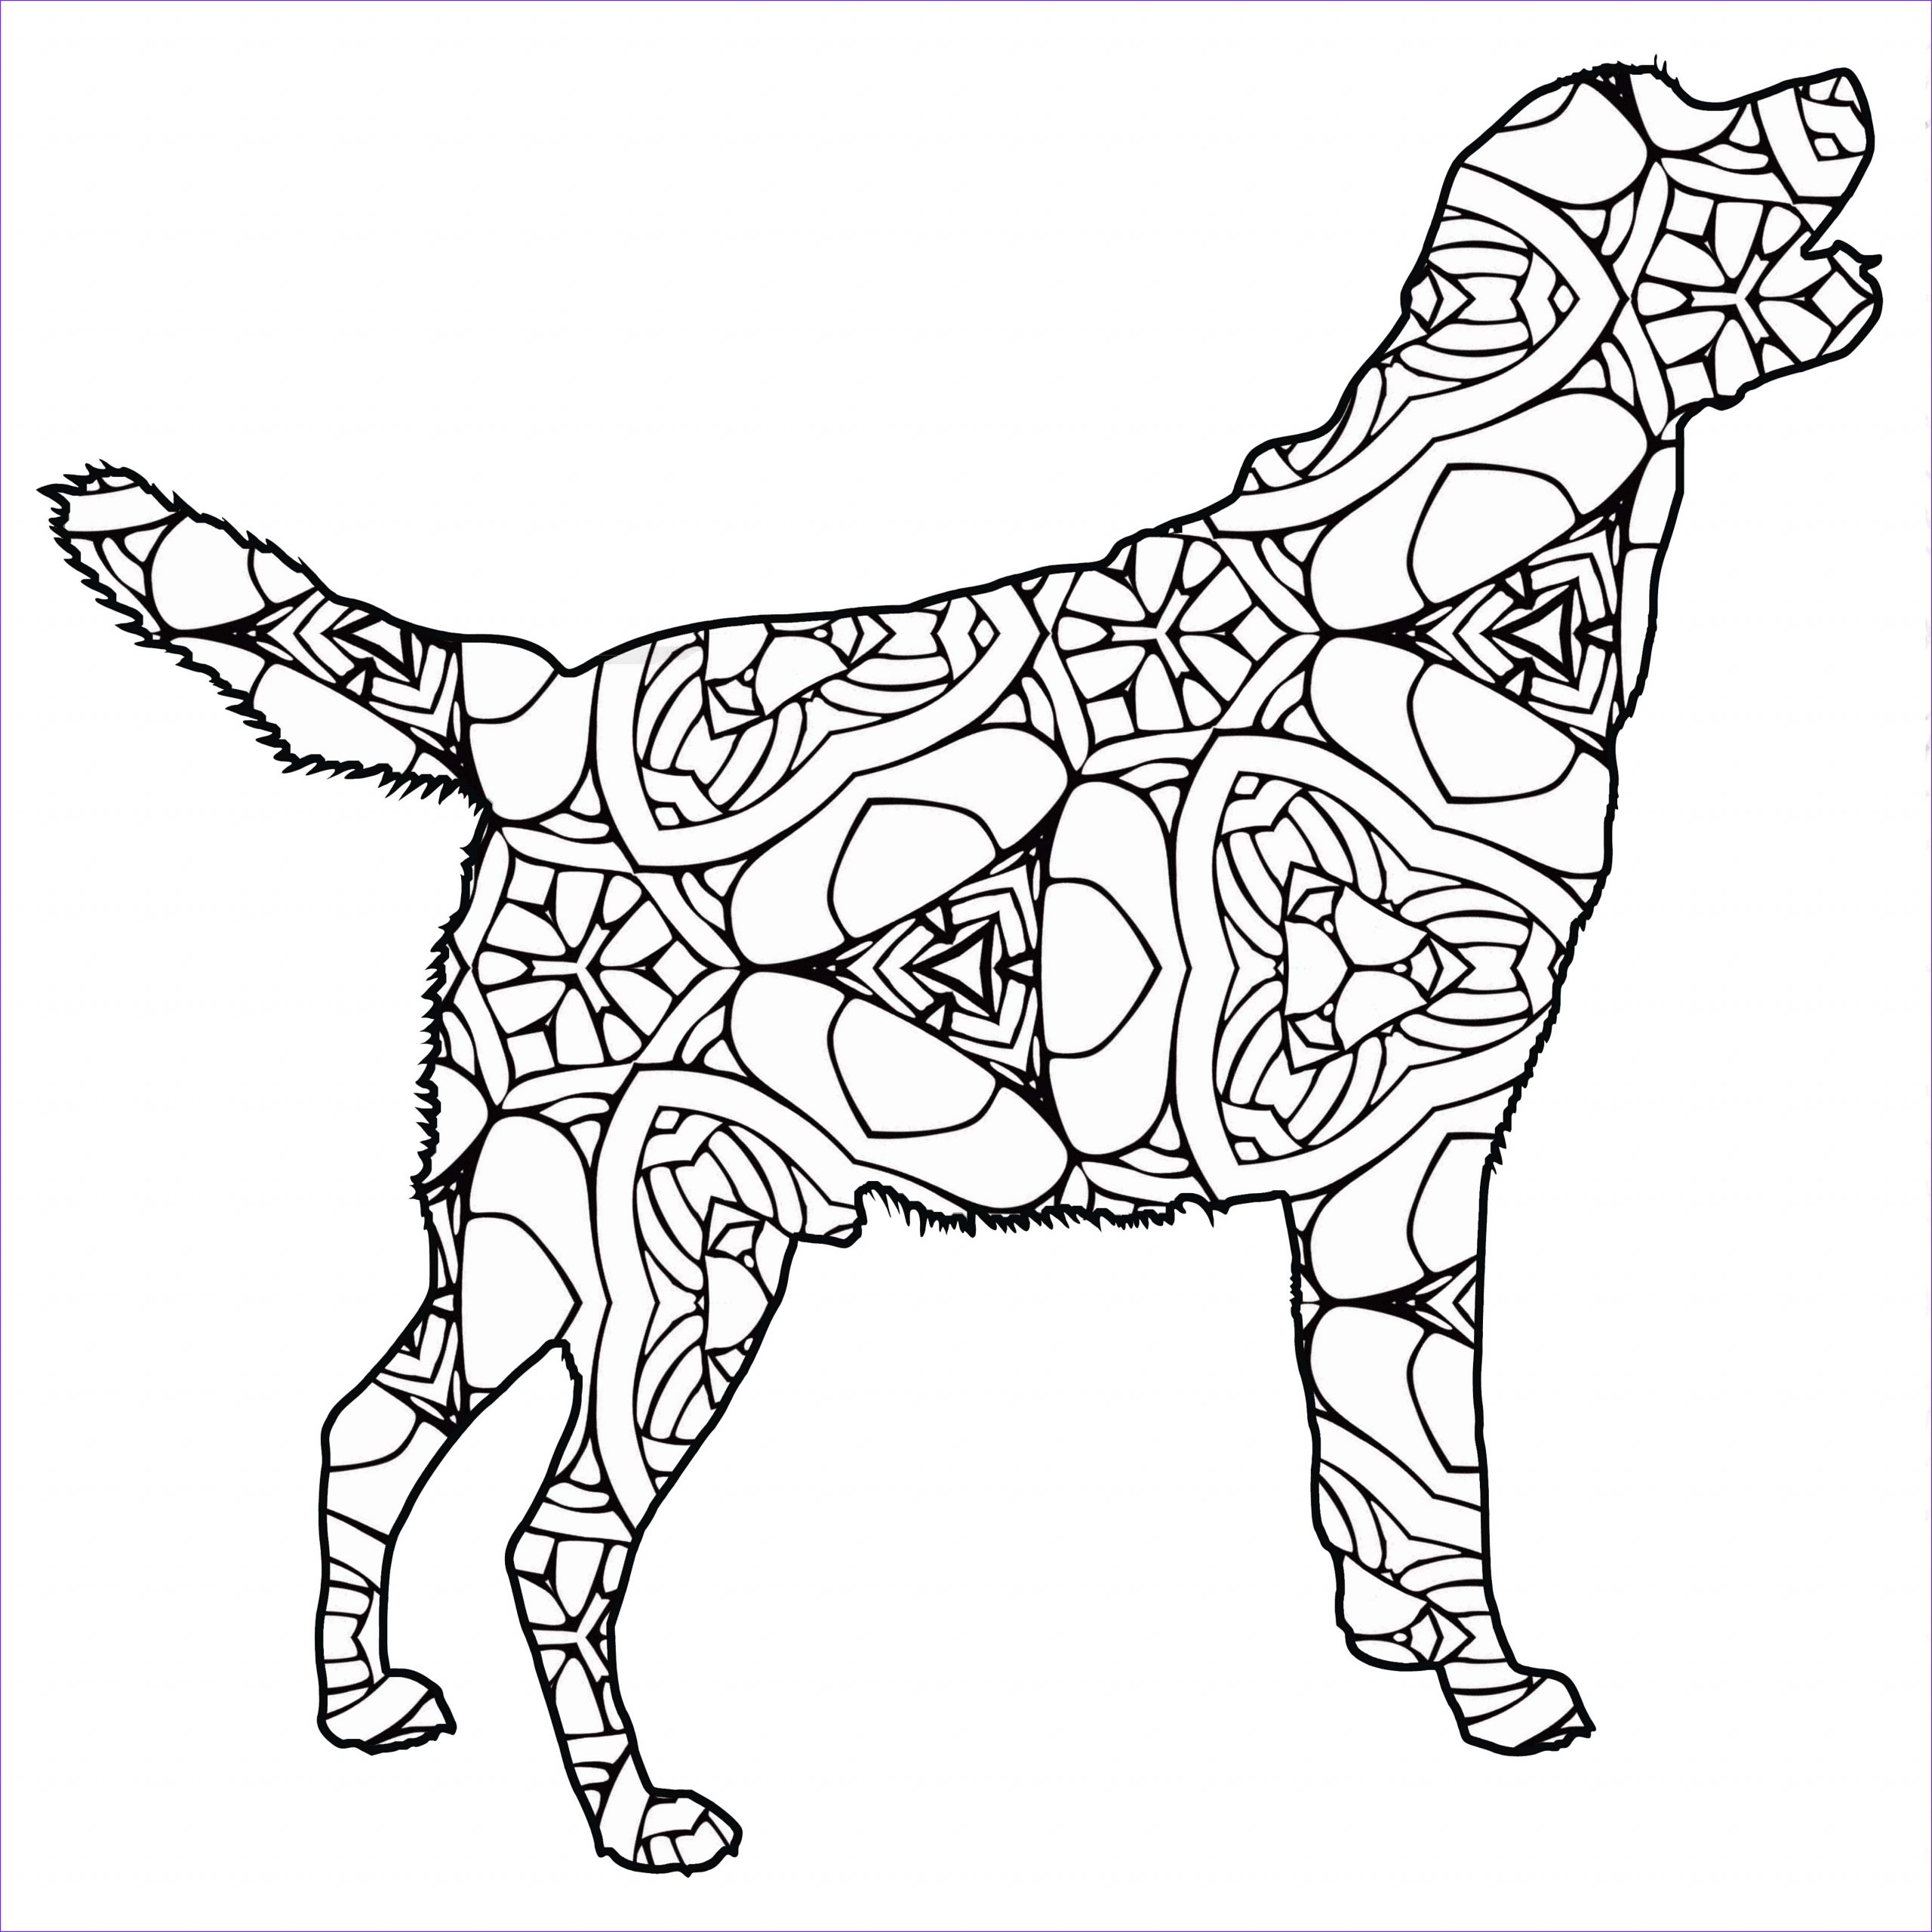 Printable Coloring Page Of Animals Cool Images 30 Free Printable Geometric Animal Coloring Pages